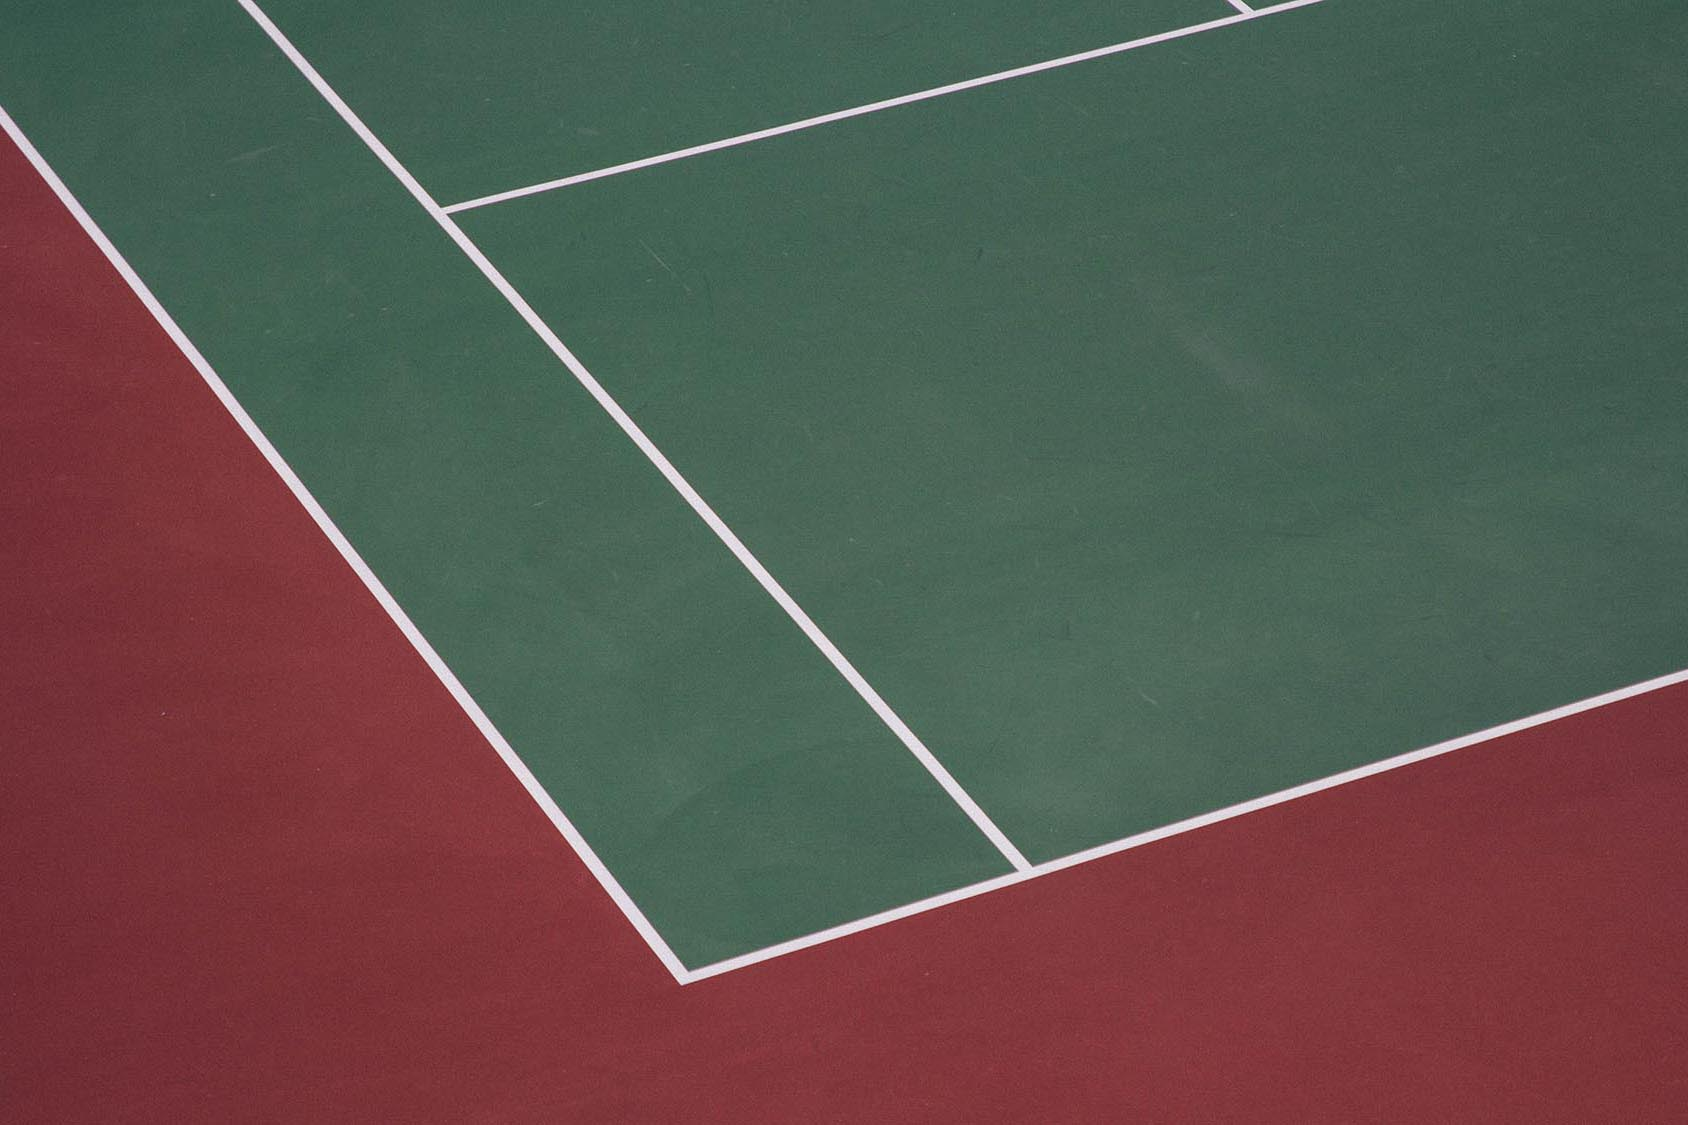 indoor-courts-01.jpg